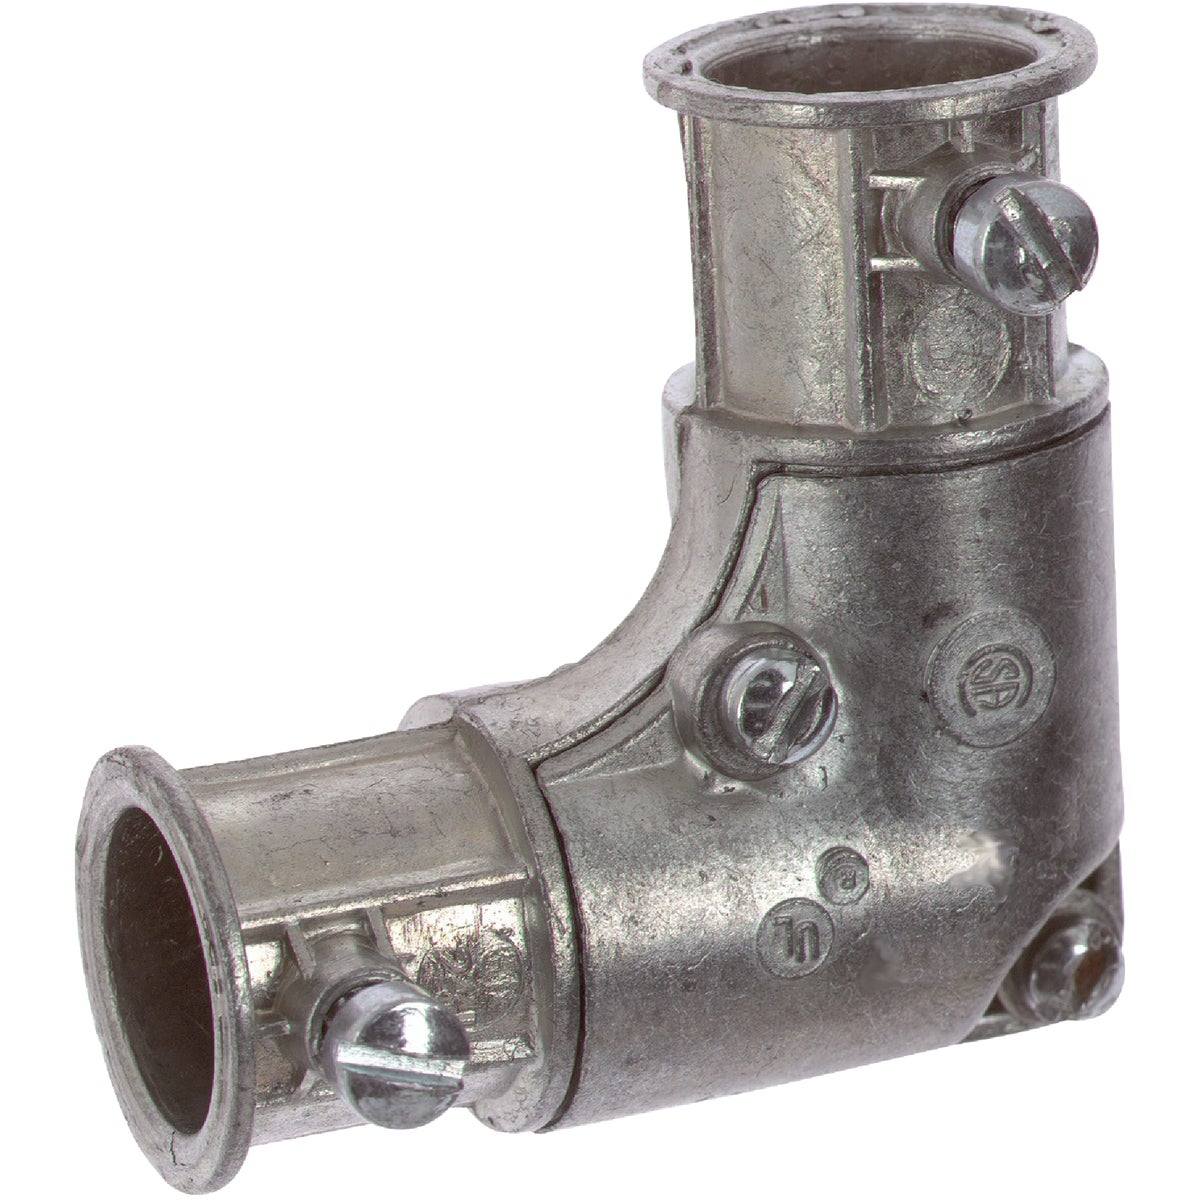 "1/2"" EMT INSIDE ELBOW - TL2911 by Thomas & Betts"